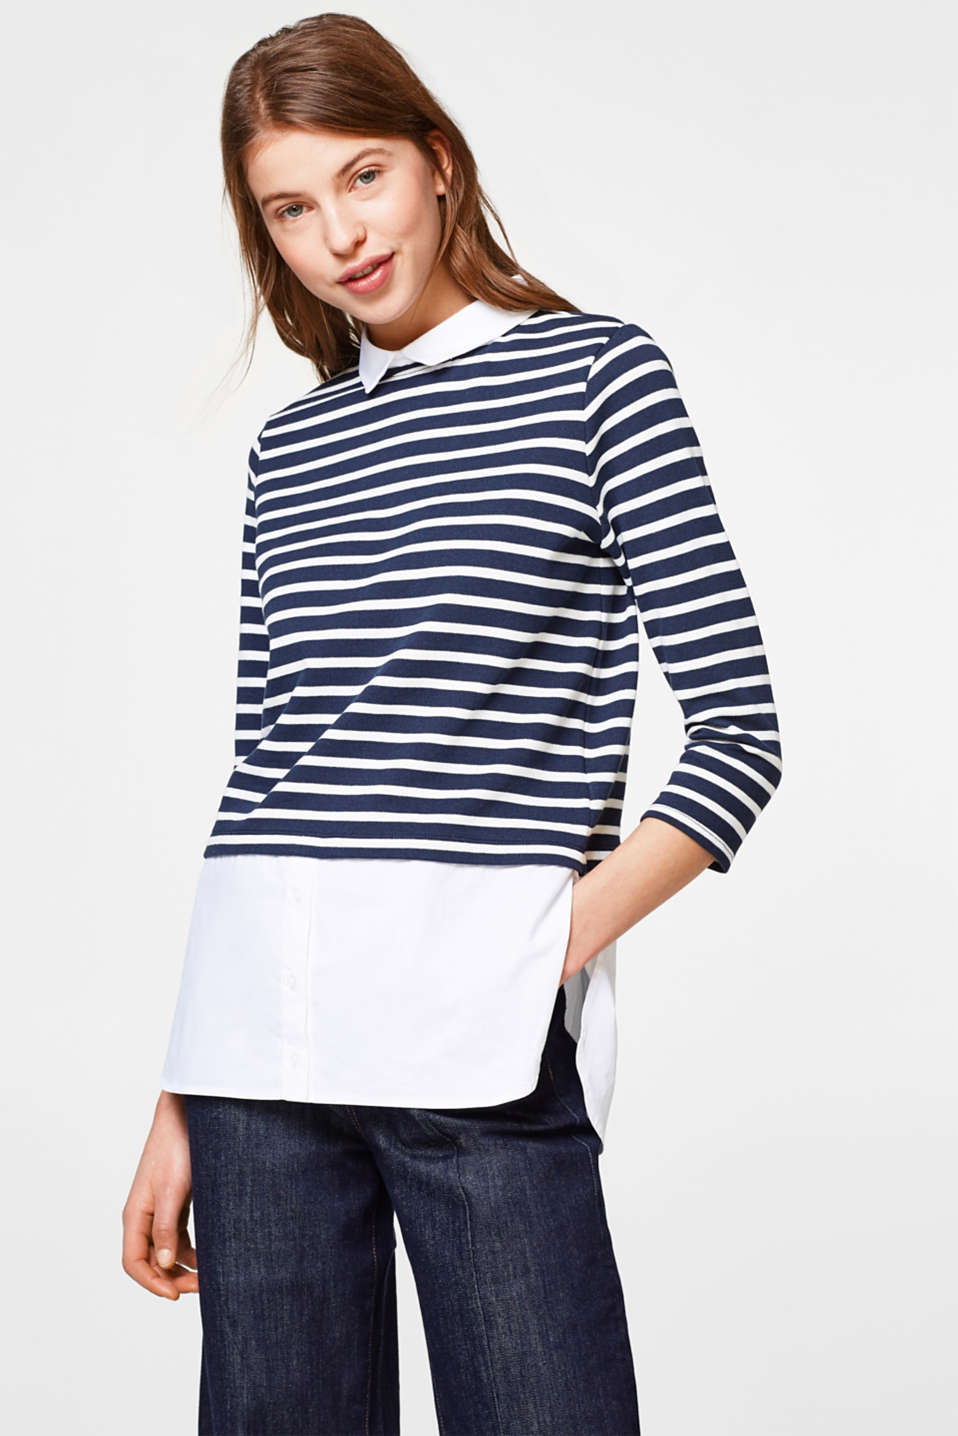 edc - 2-in-1 long sleeve top with a collar